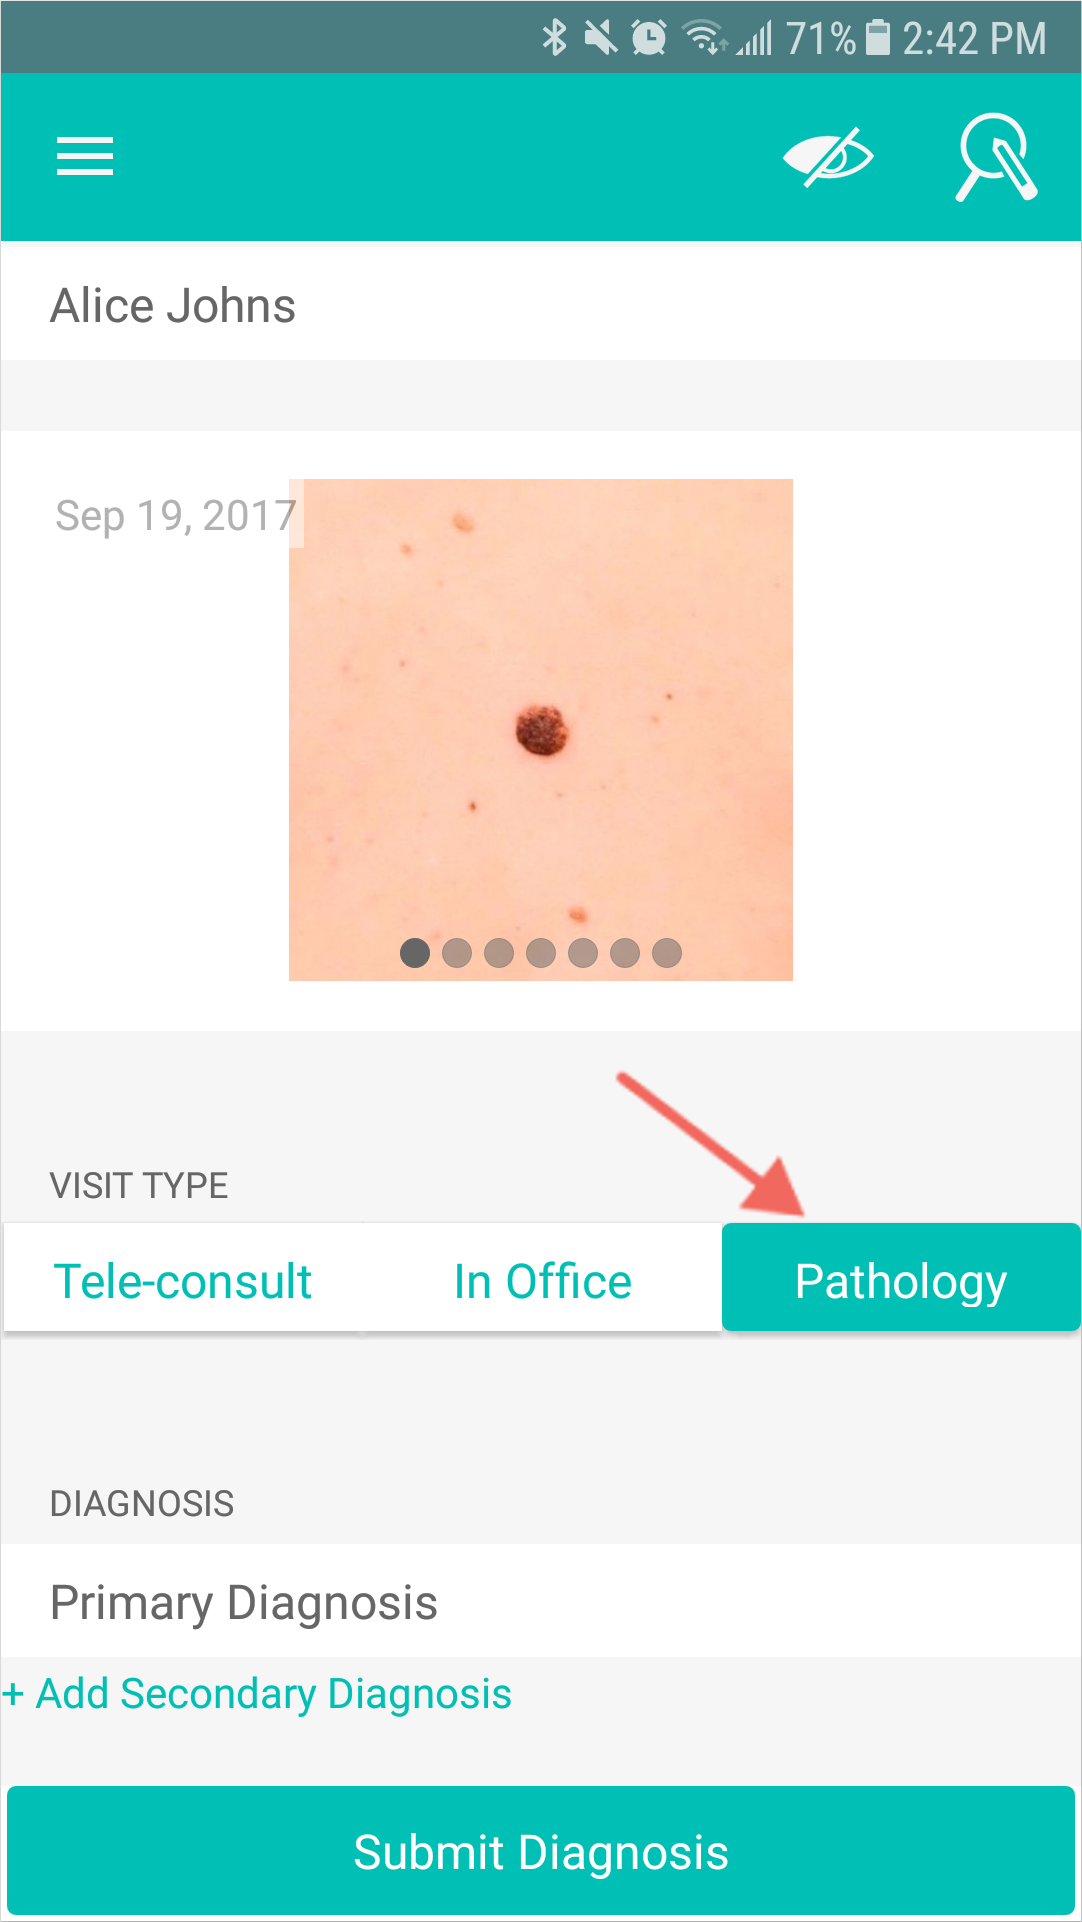 6._Visit_Type_Pathology.png